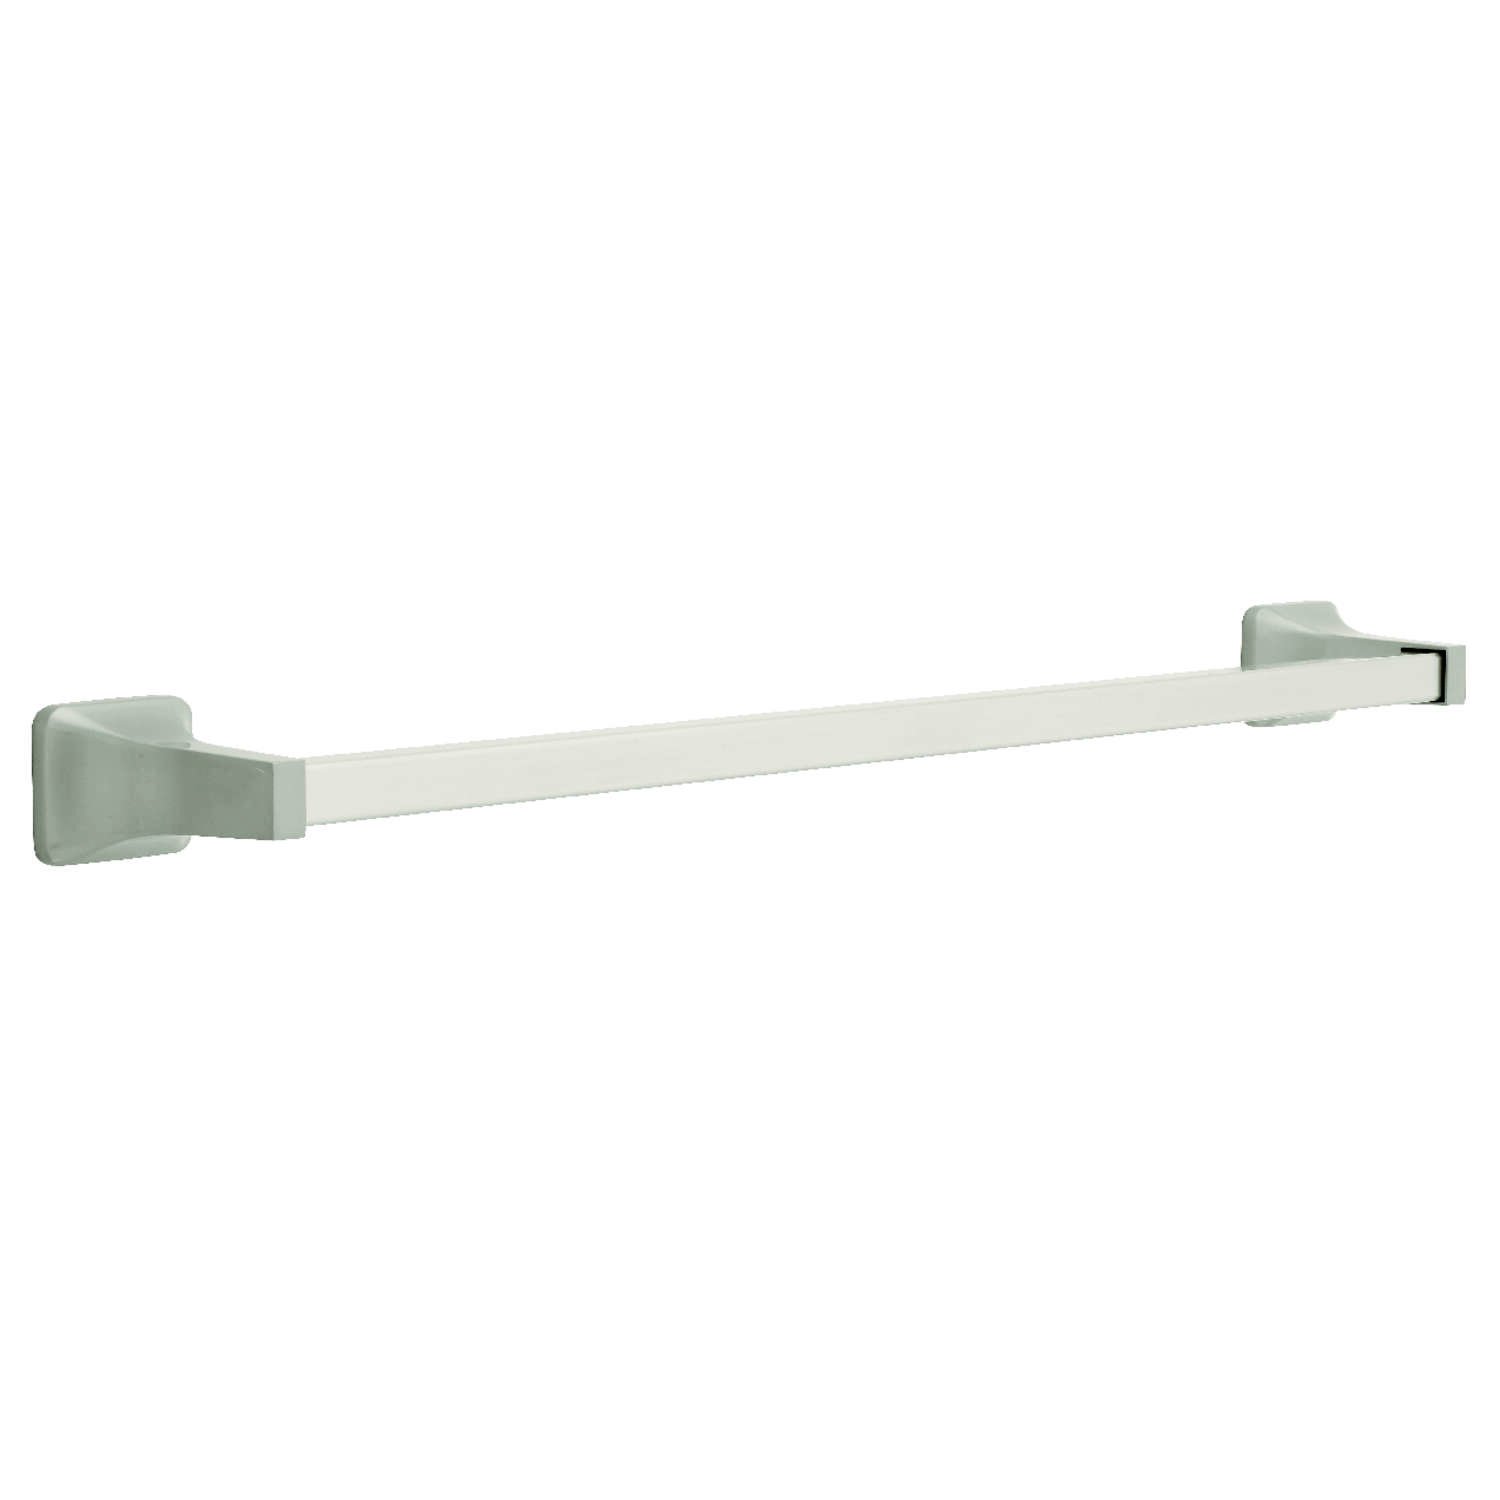 Franklin Brass  Futura  Satin Nickel  Towel Bar  24 in. L Die Cast Zinc